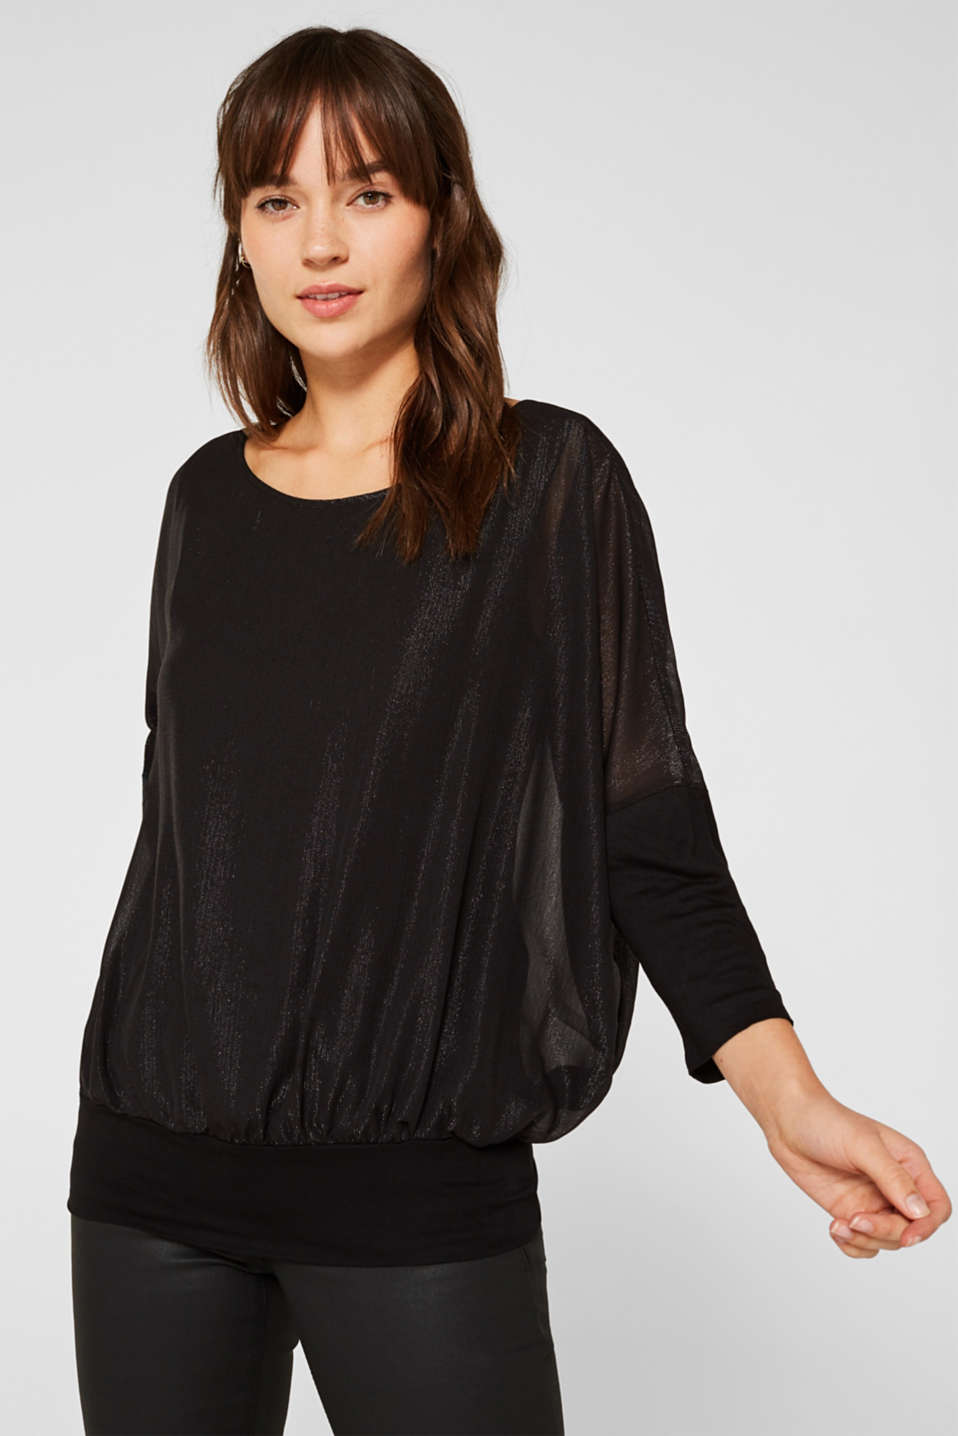 Esprit - Blouse in crinkle chiffon